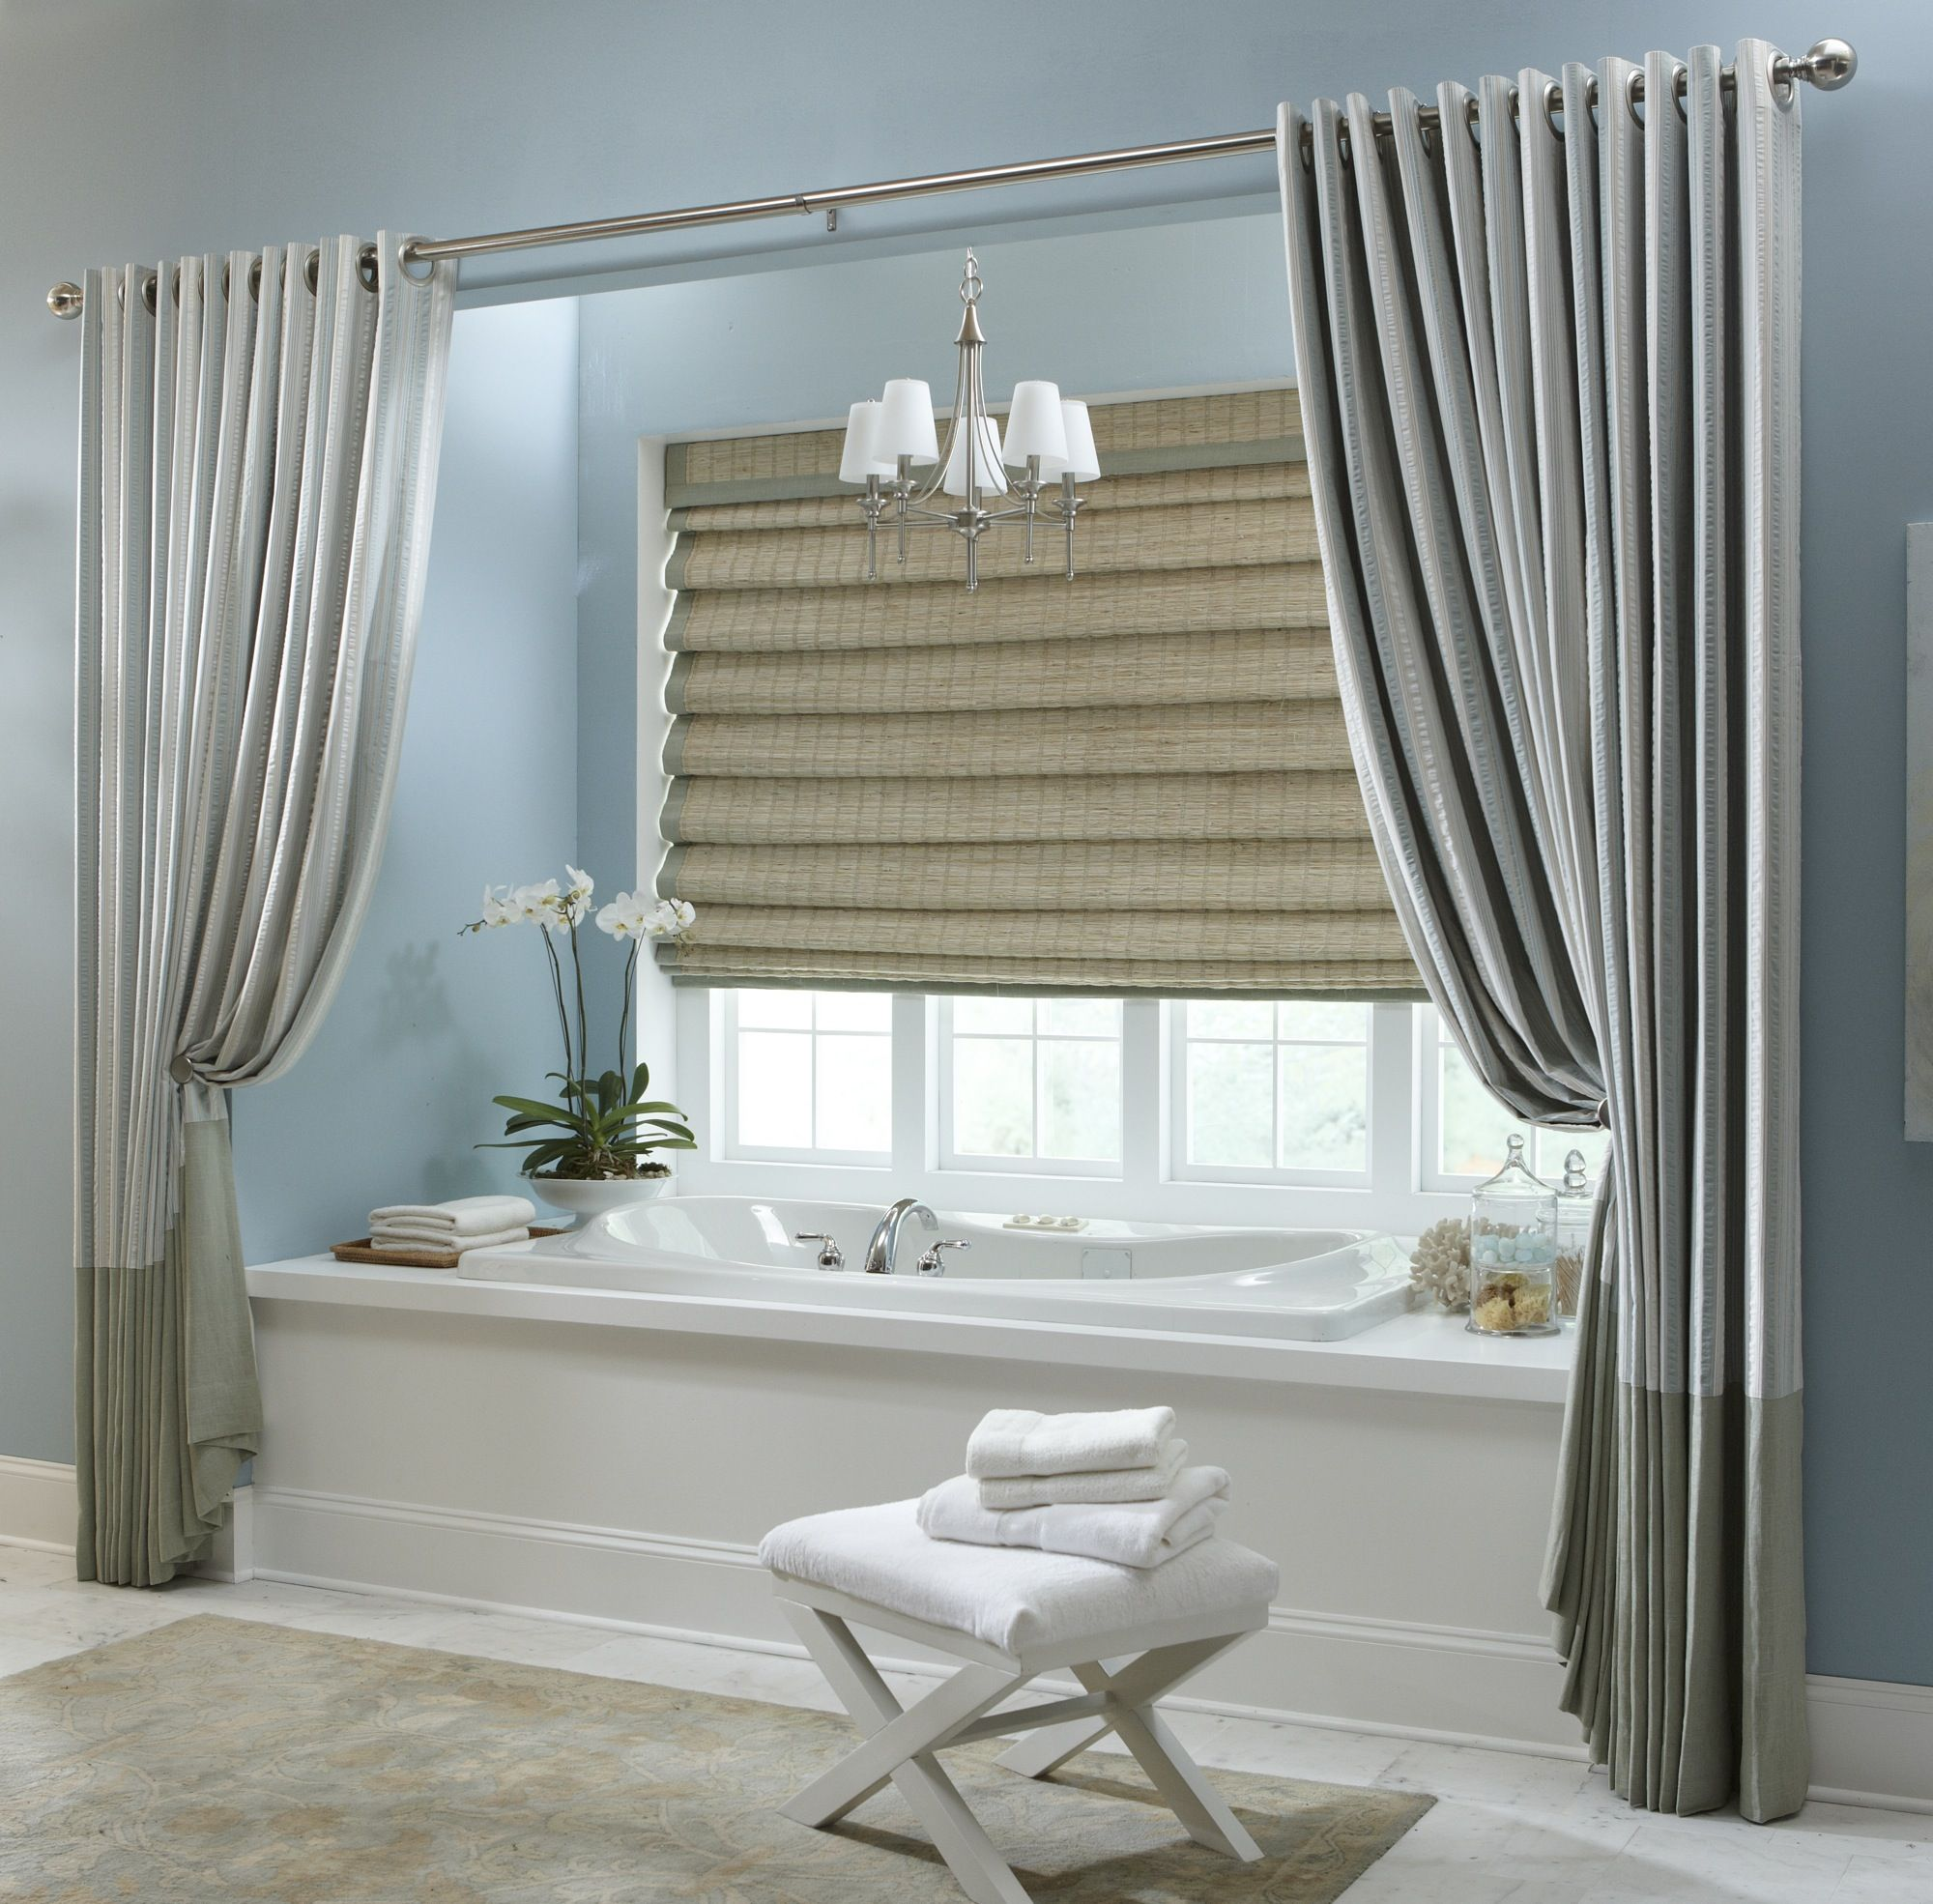 Add Some Privacy To Your In Home Spa With These Beautiful Draperies!  Courtesy Of